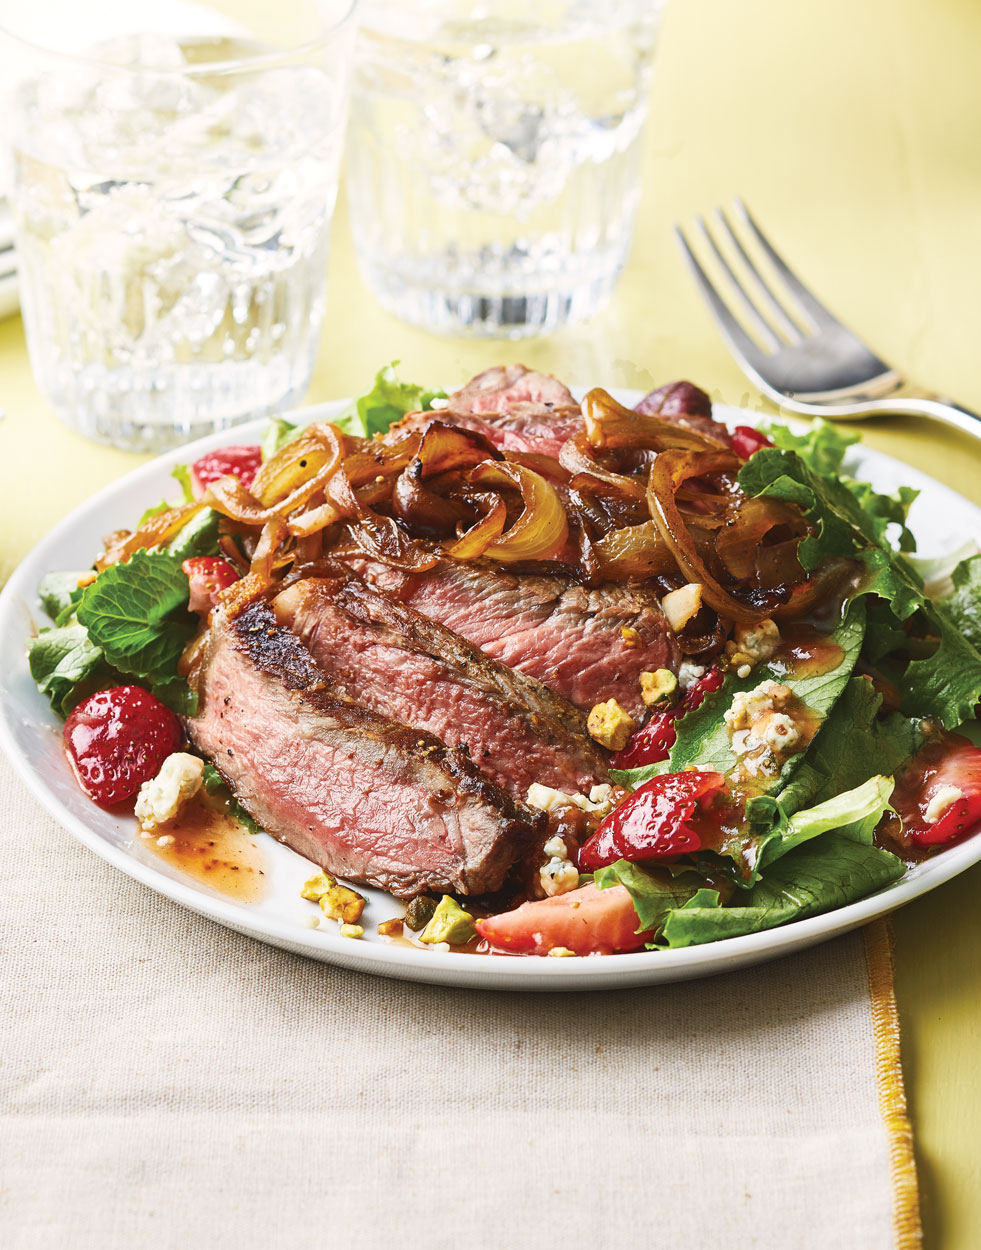 Strawberry & Steak Salad